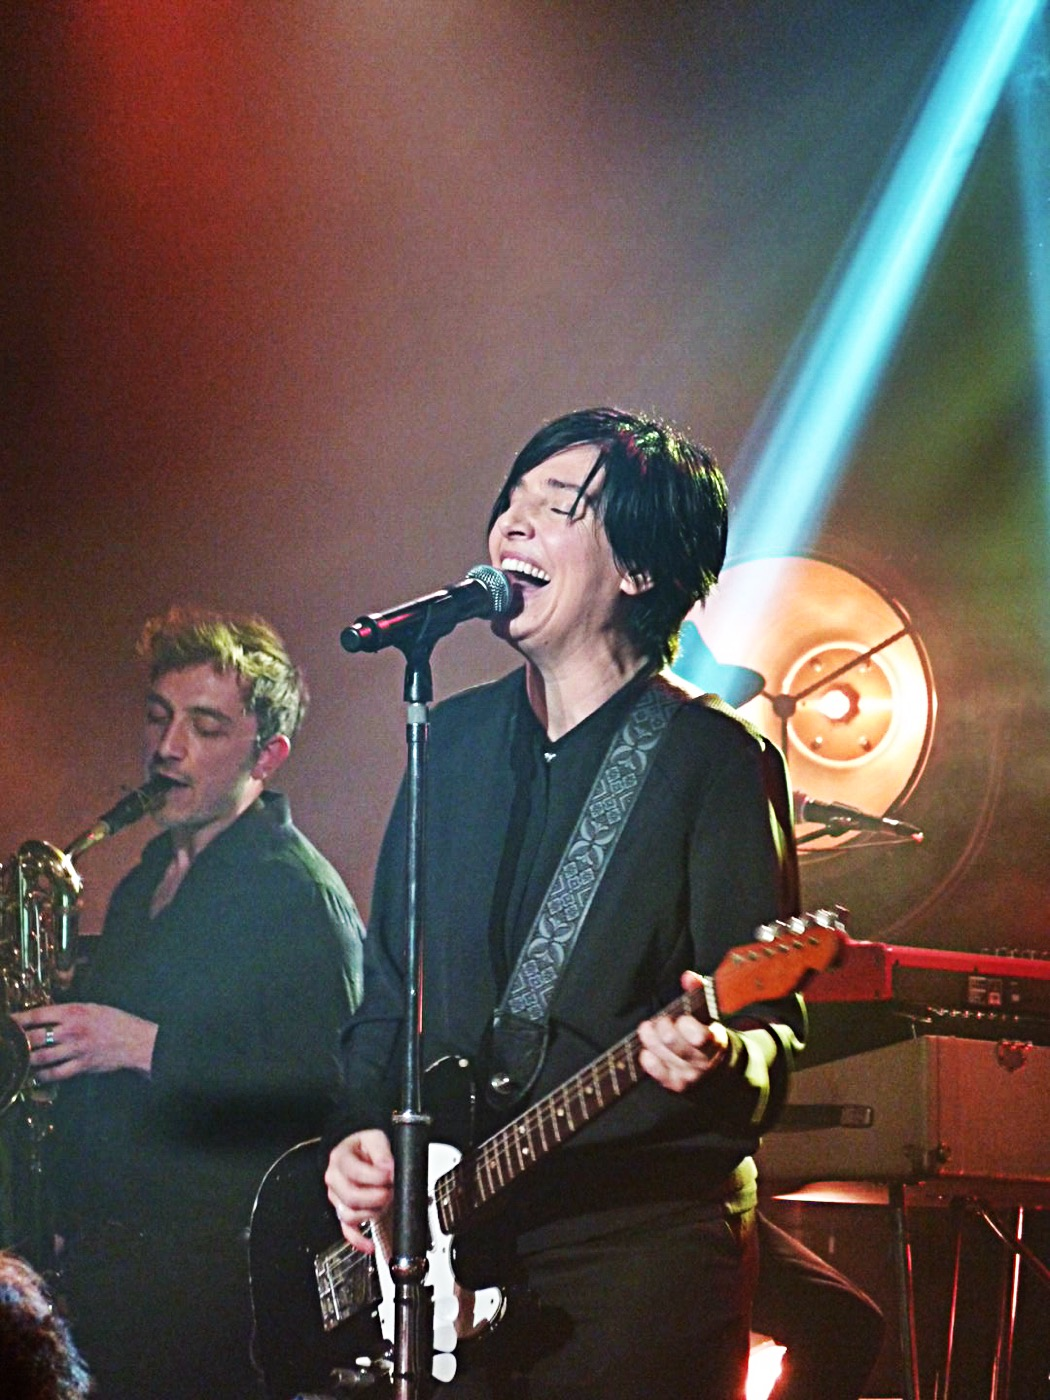 Alcaline Sharleen Spiteri groupe Texas band live concert Le Trianon Paris émission musicale 30 avril 2015 france 2 Texas 25 photo by United States of Paris blog